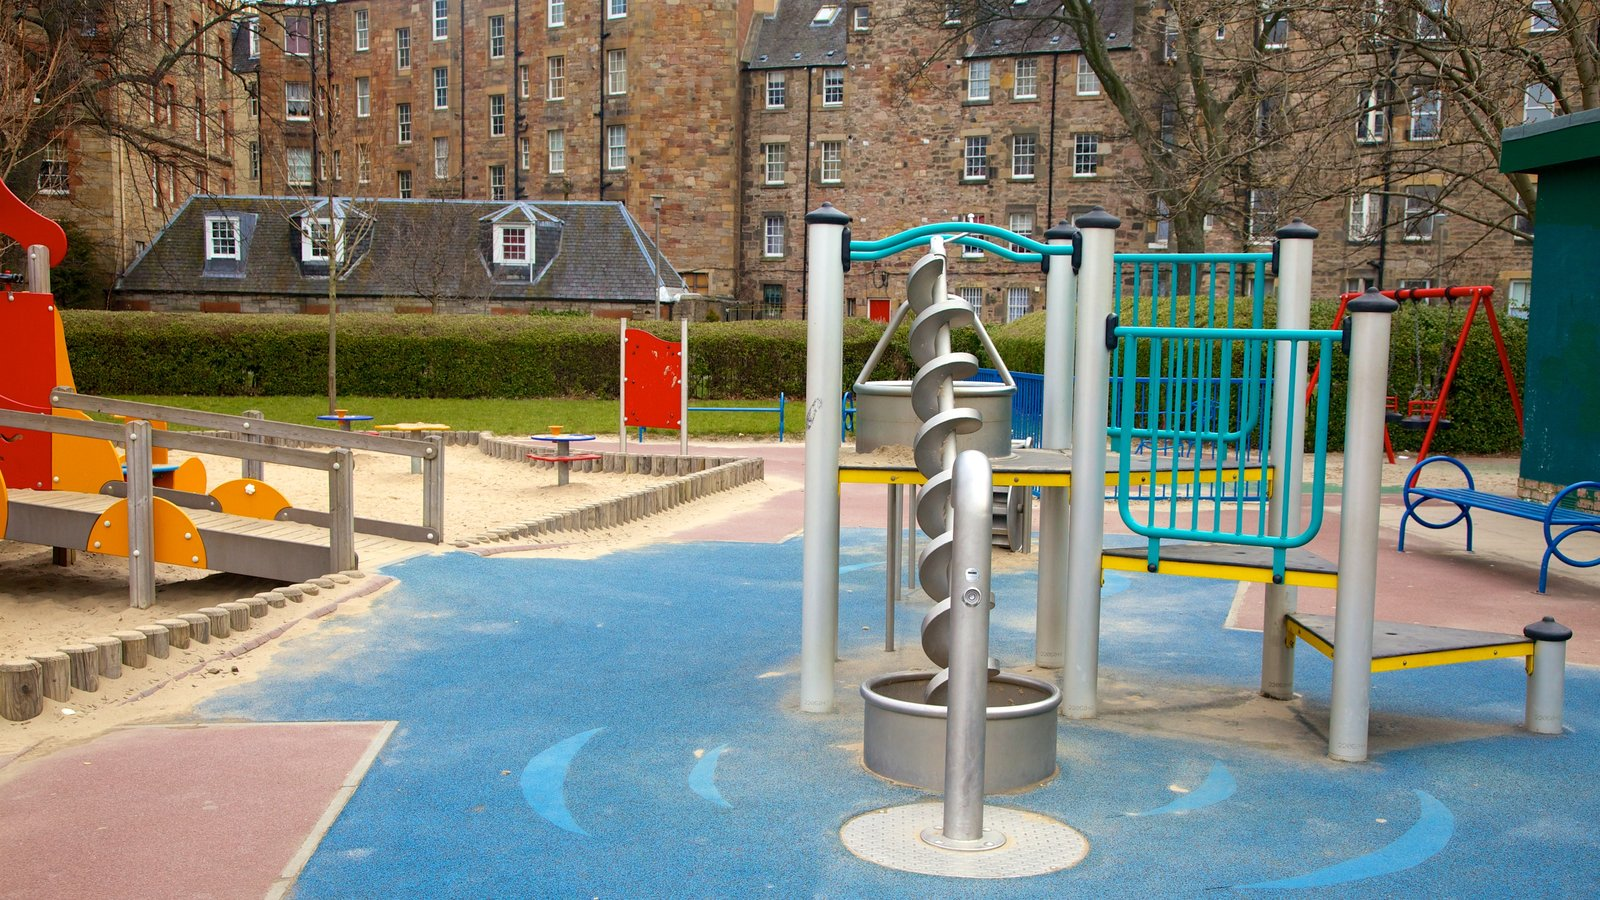 The Meadows showing a playground